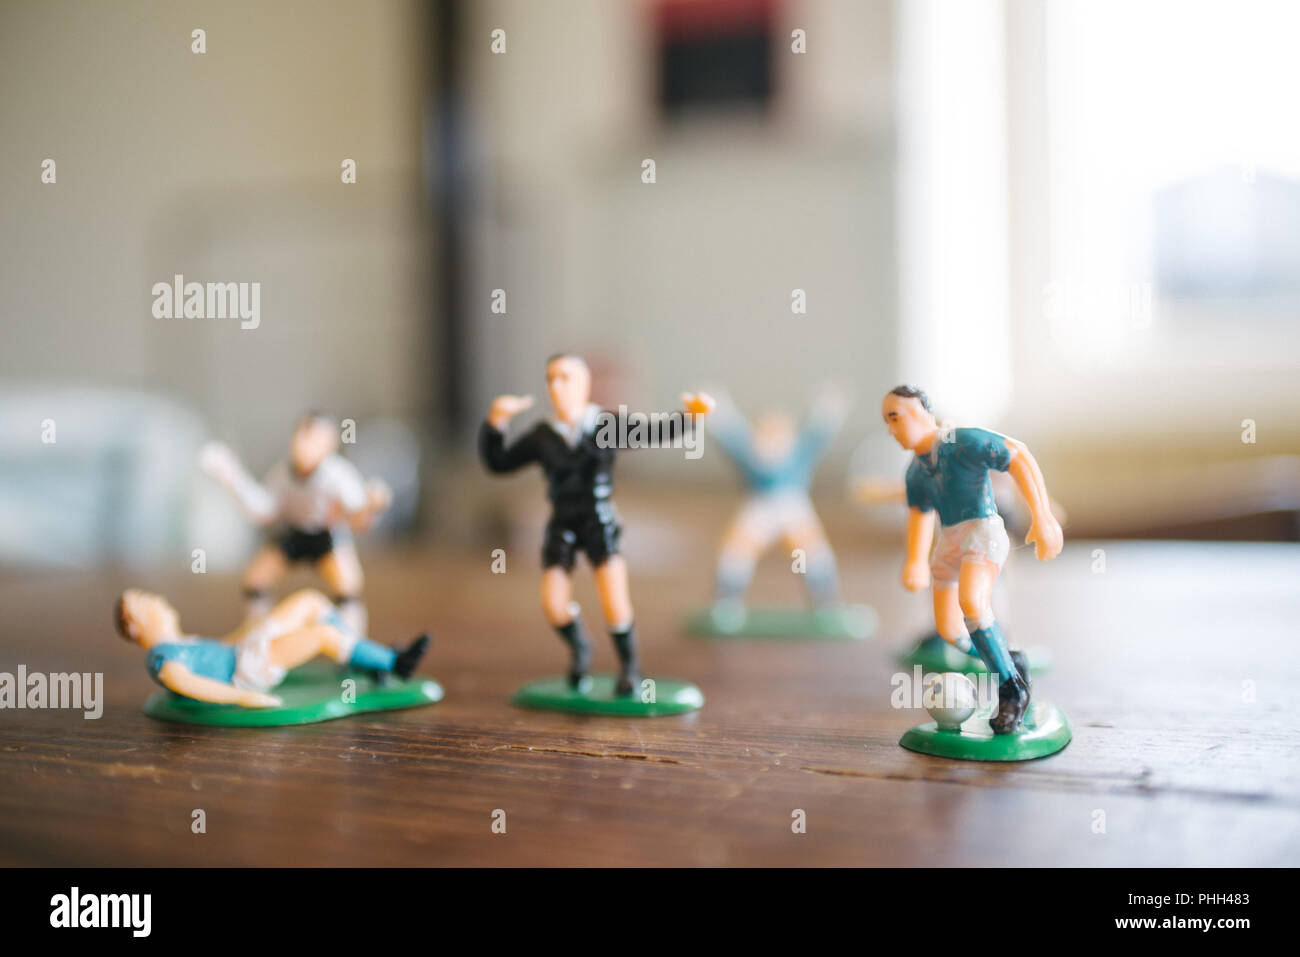 plastic figurines of soccer players - Stock Image